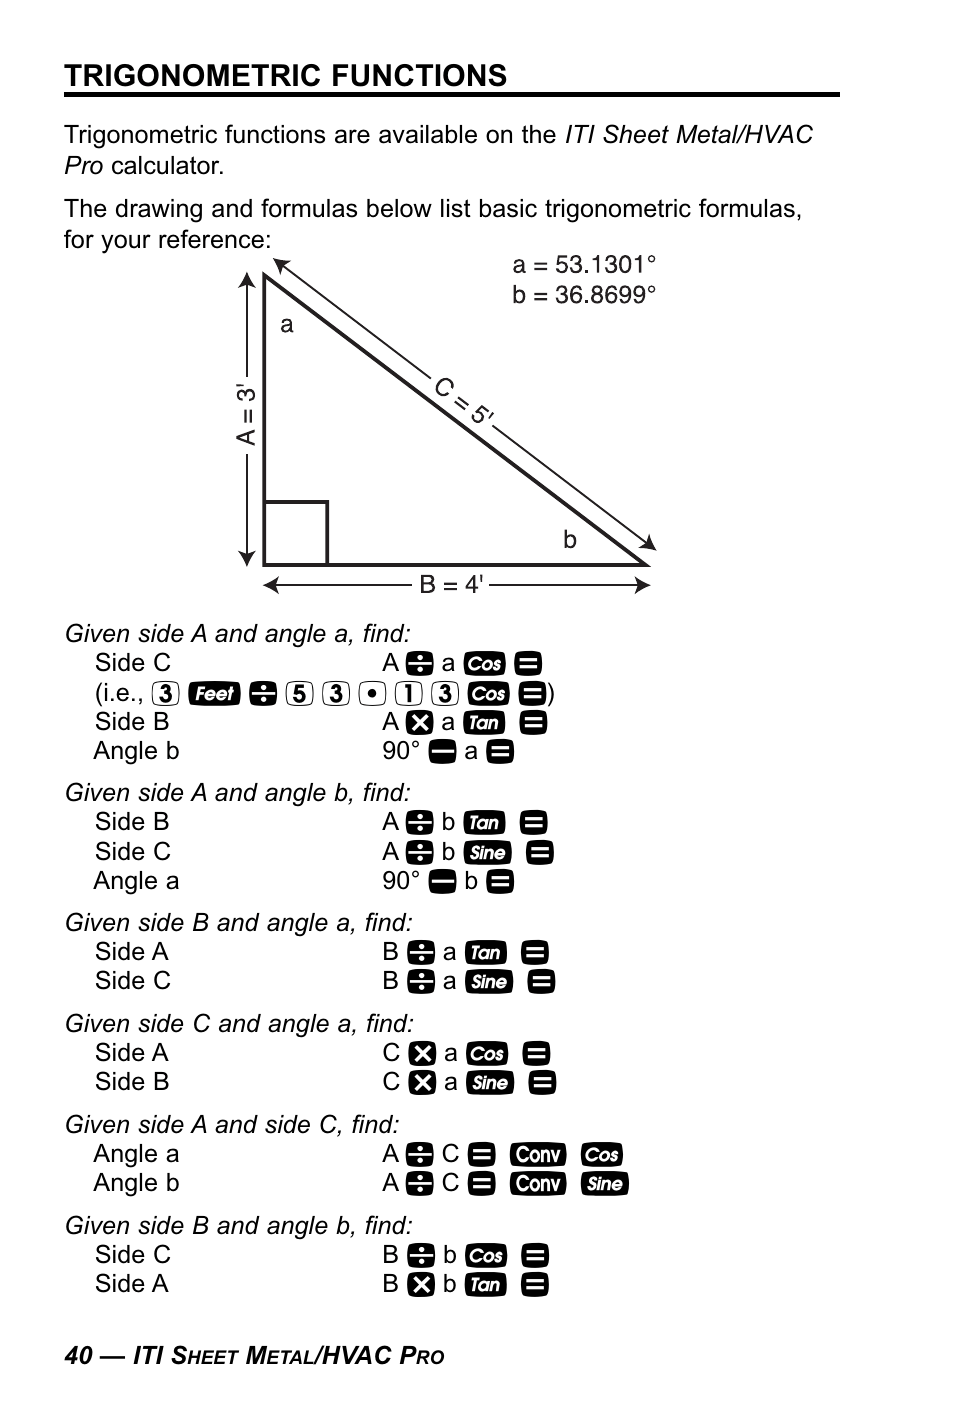 medium resolution of trigonometric functions calculated industries 4090 user manual page 41 123